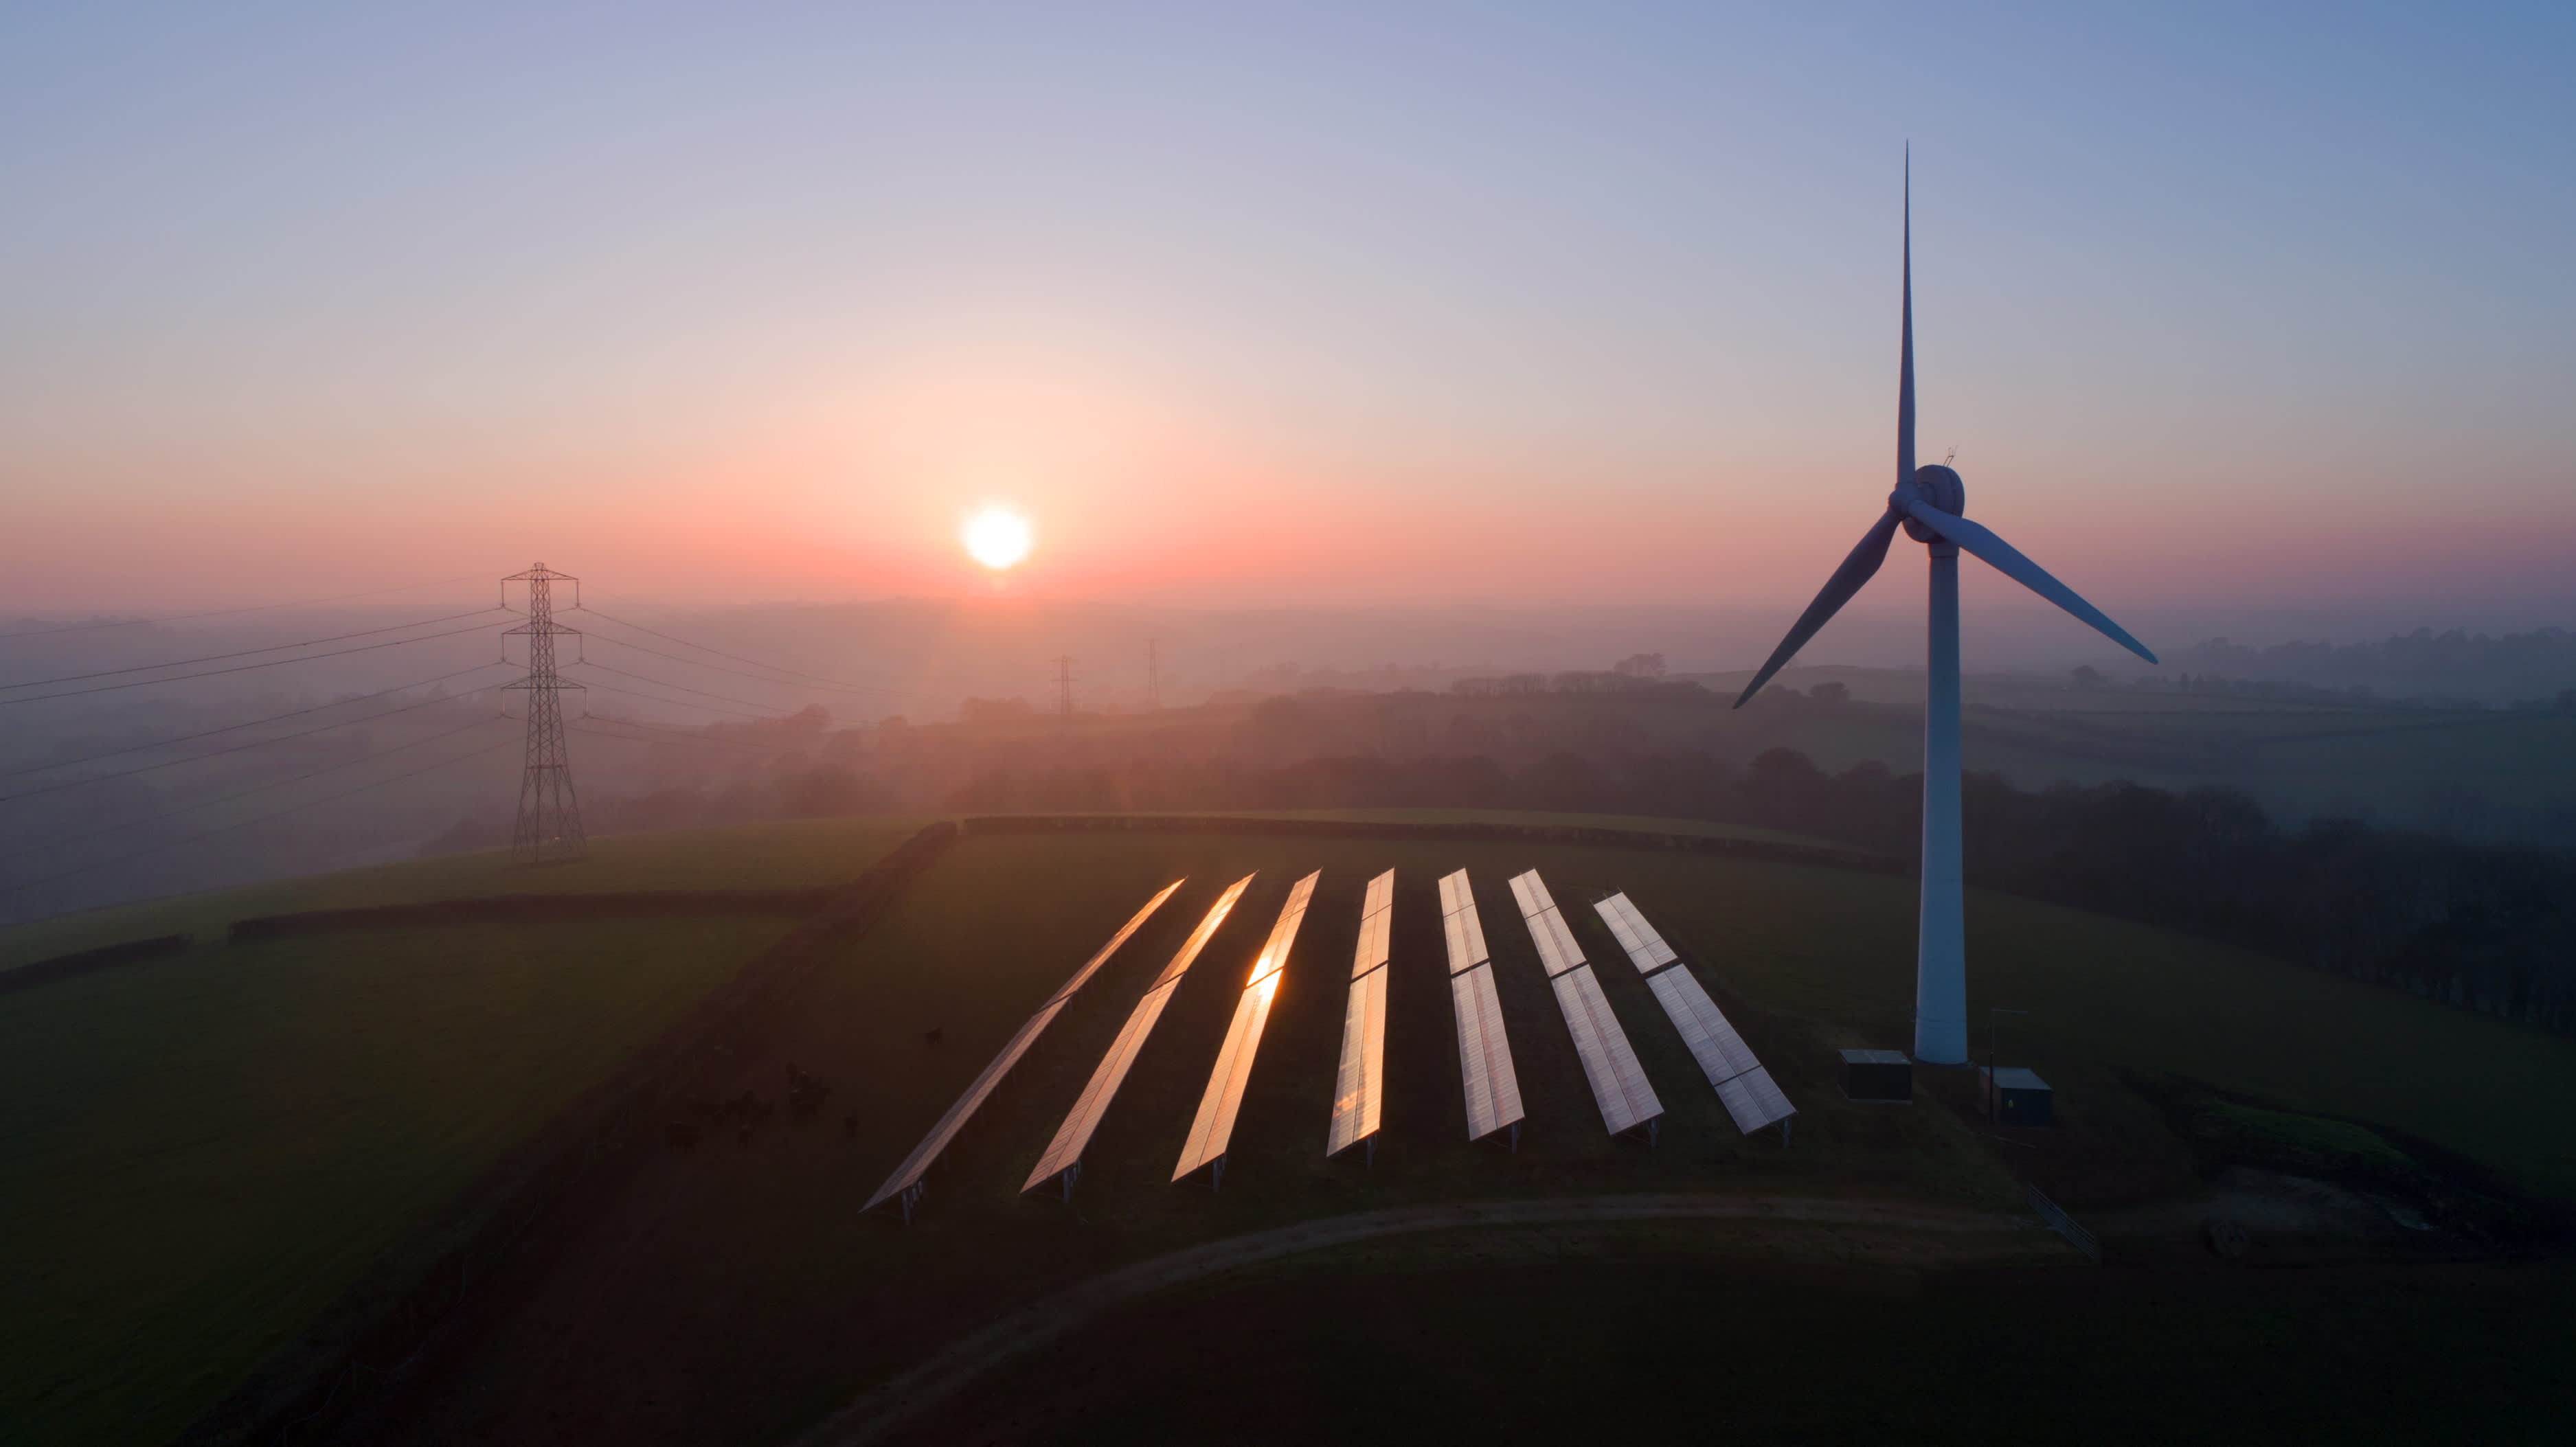 Renewables grew at fastest rate in two decades last year, IEA says in new report